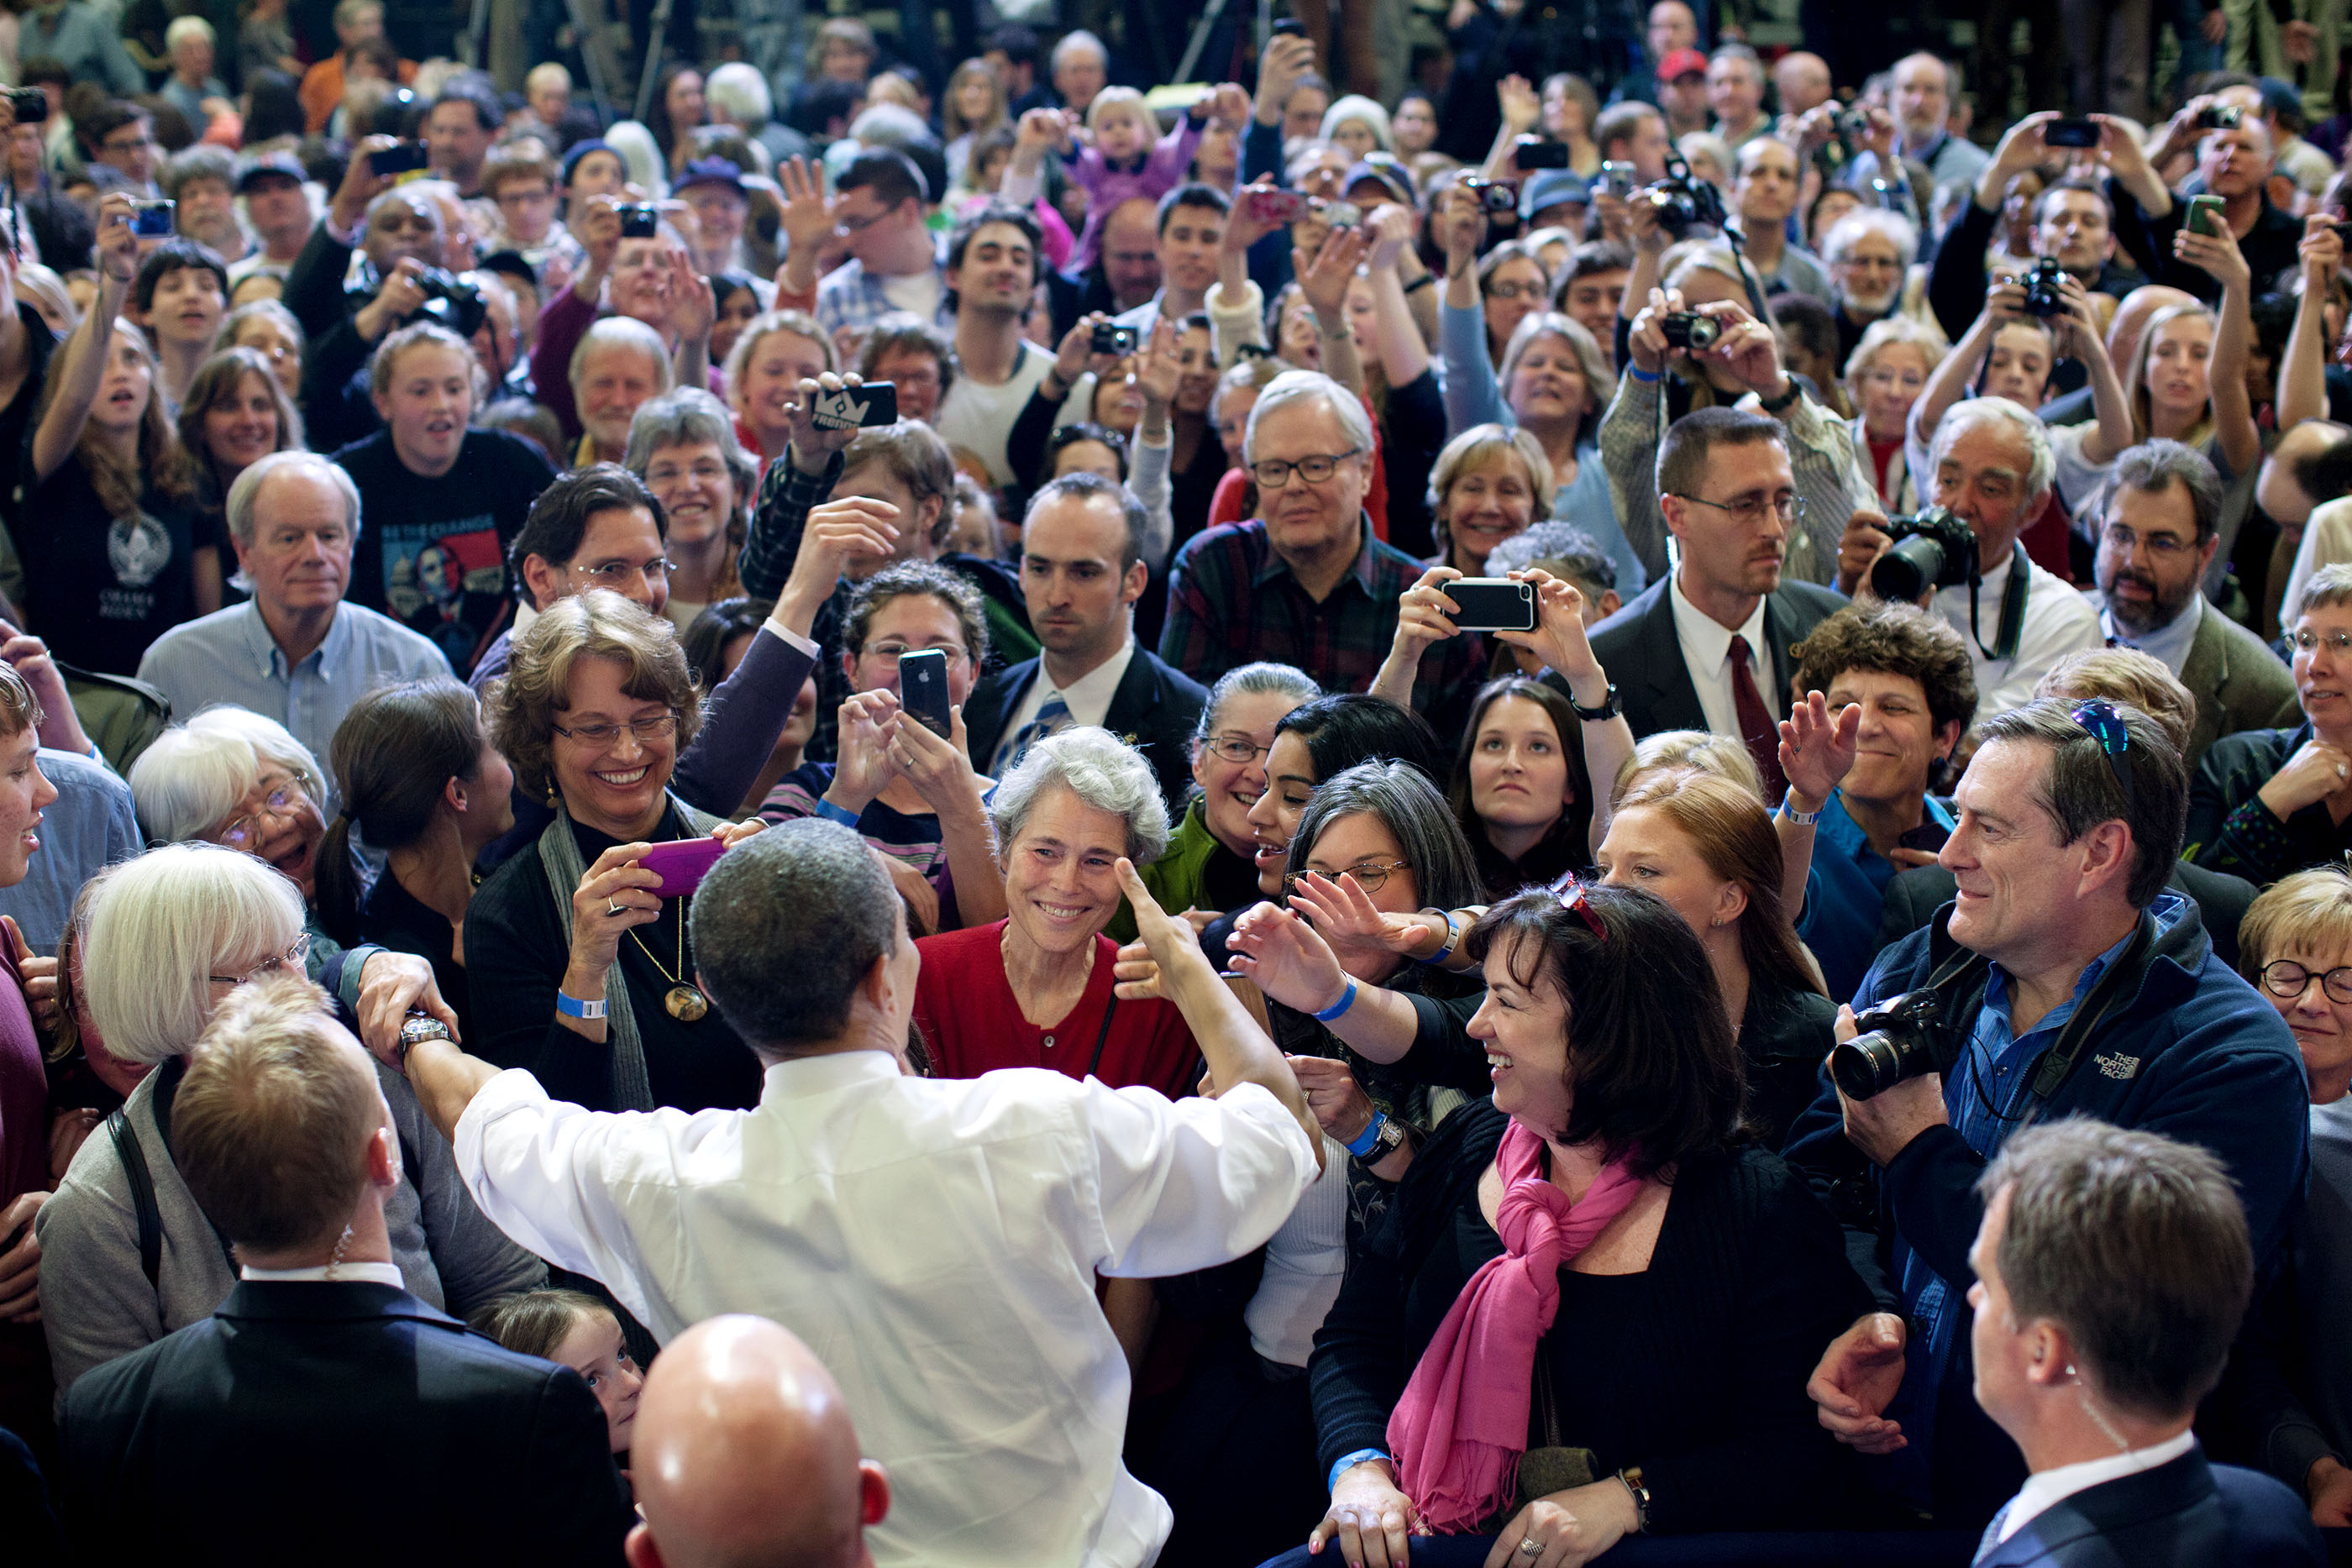 Vermont, March 30, 2012. Greeting the crowd in Burlington. (Official White House Photo by Pete Souza)